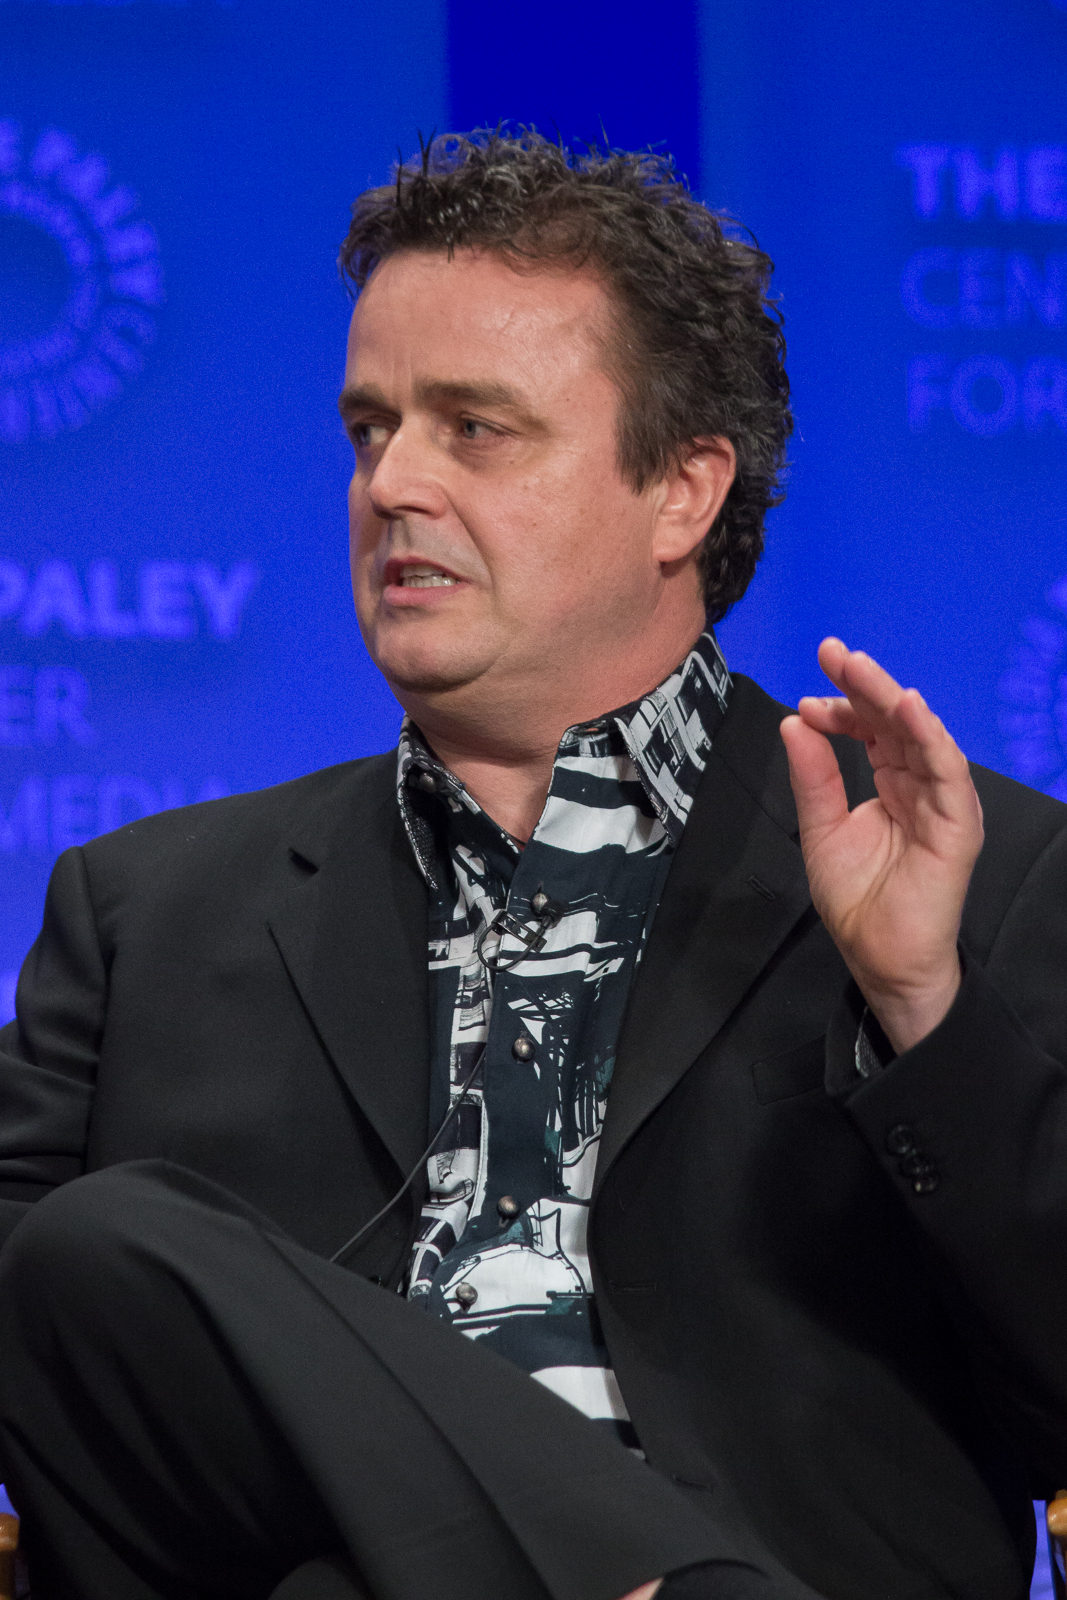 Callery at the 2015 [[Paley Center for Media|PaleyFest]]